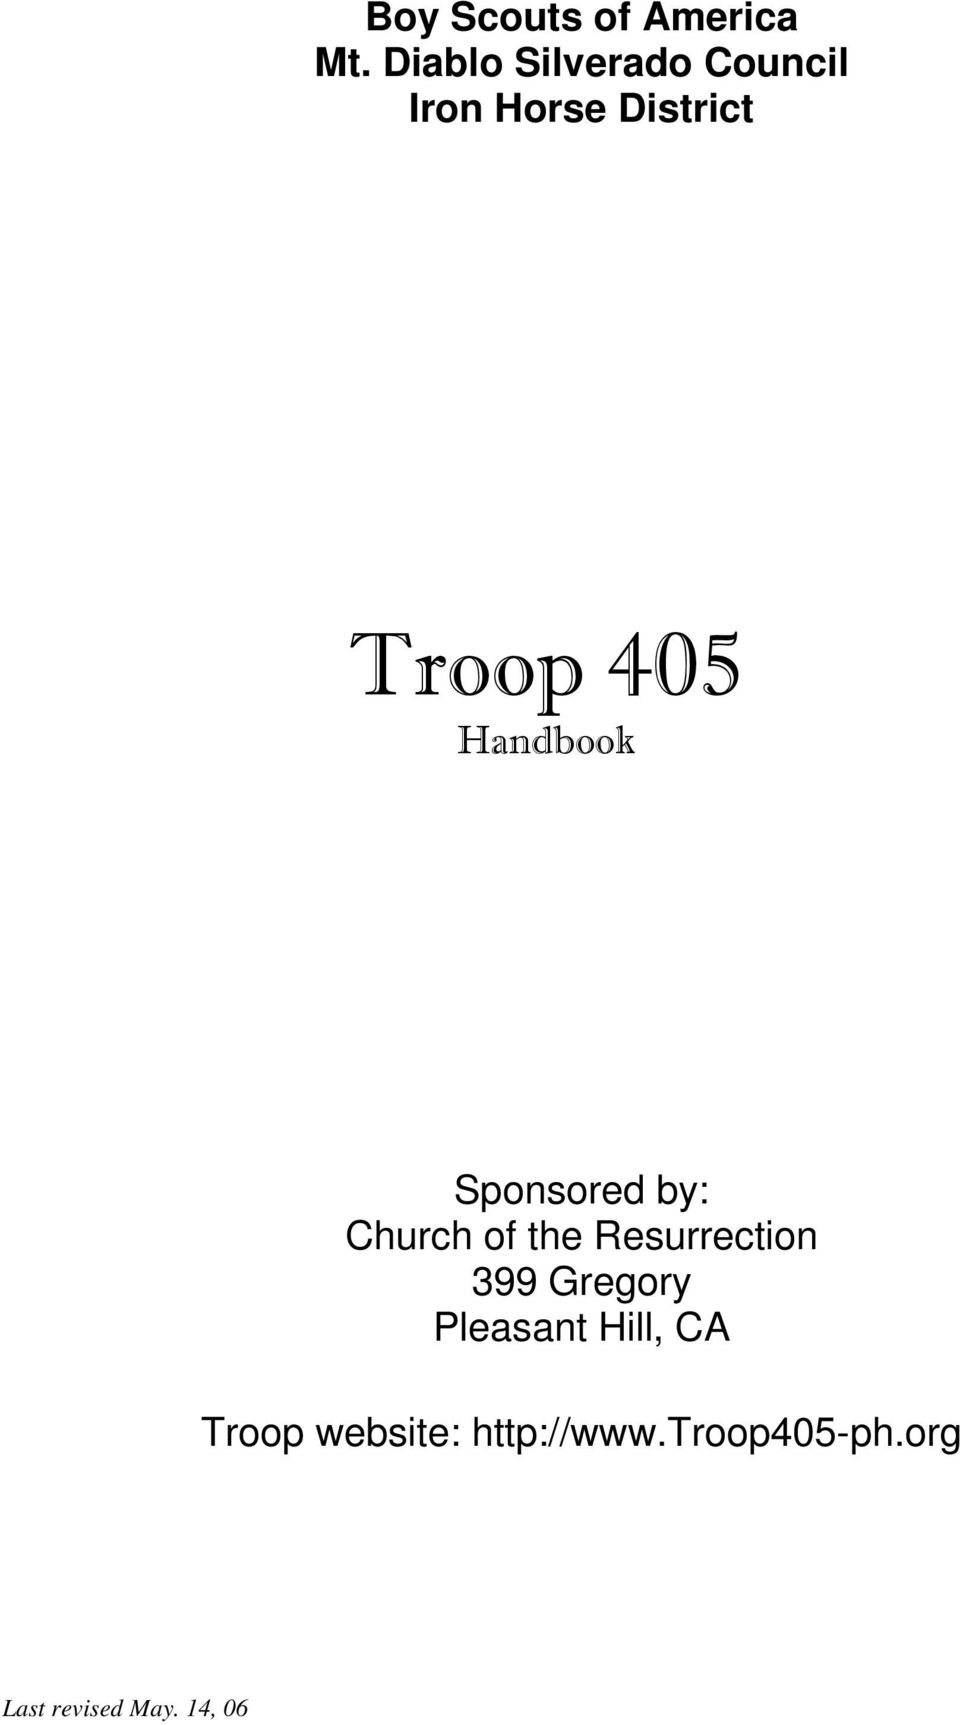 Handbook Sponsored by: Church of the Resurrection 399